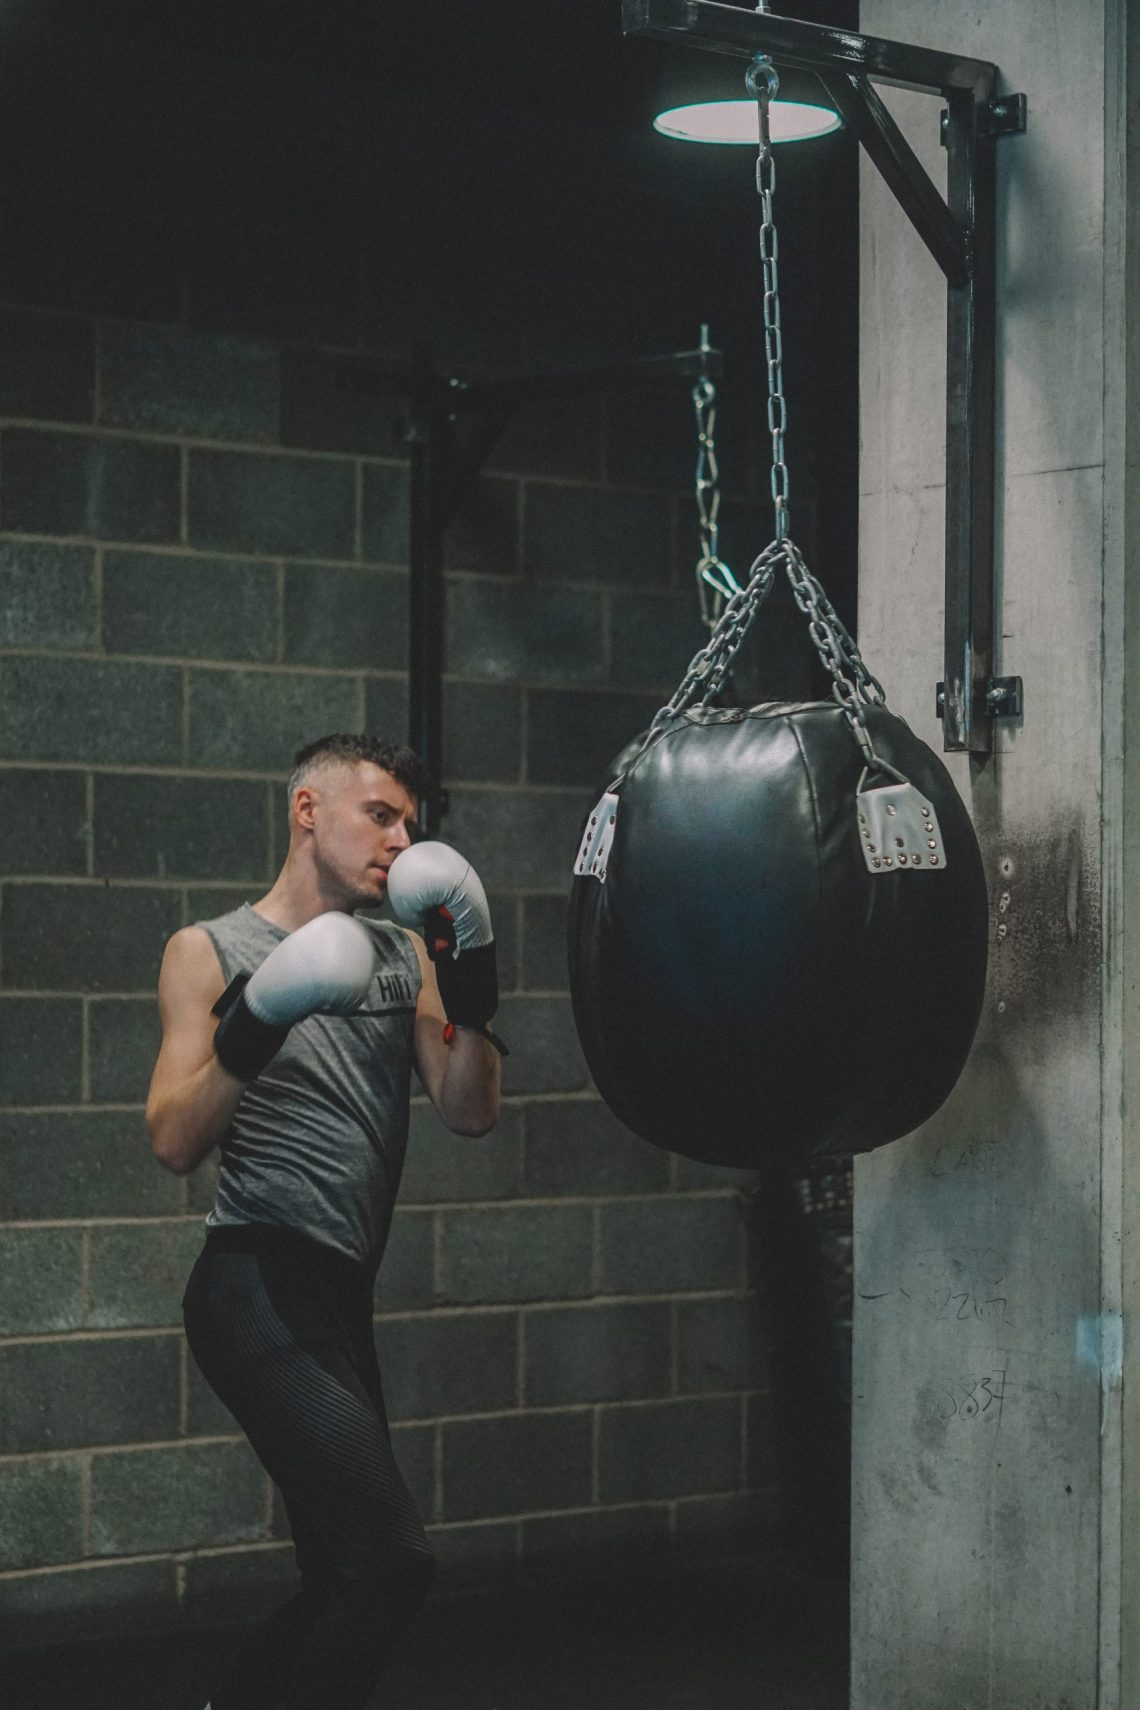 Boxing at 12x3 Gym in Aldgate. Blog by Skirmantas Petraitis.